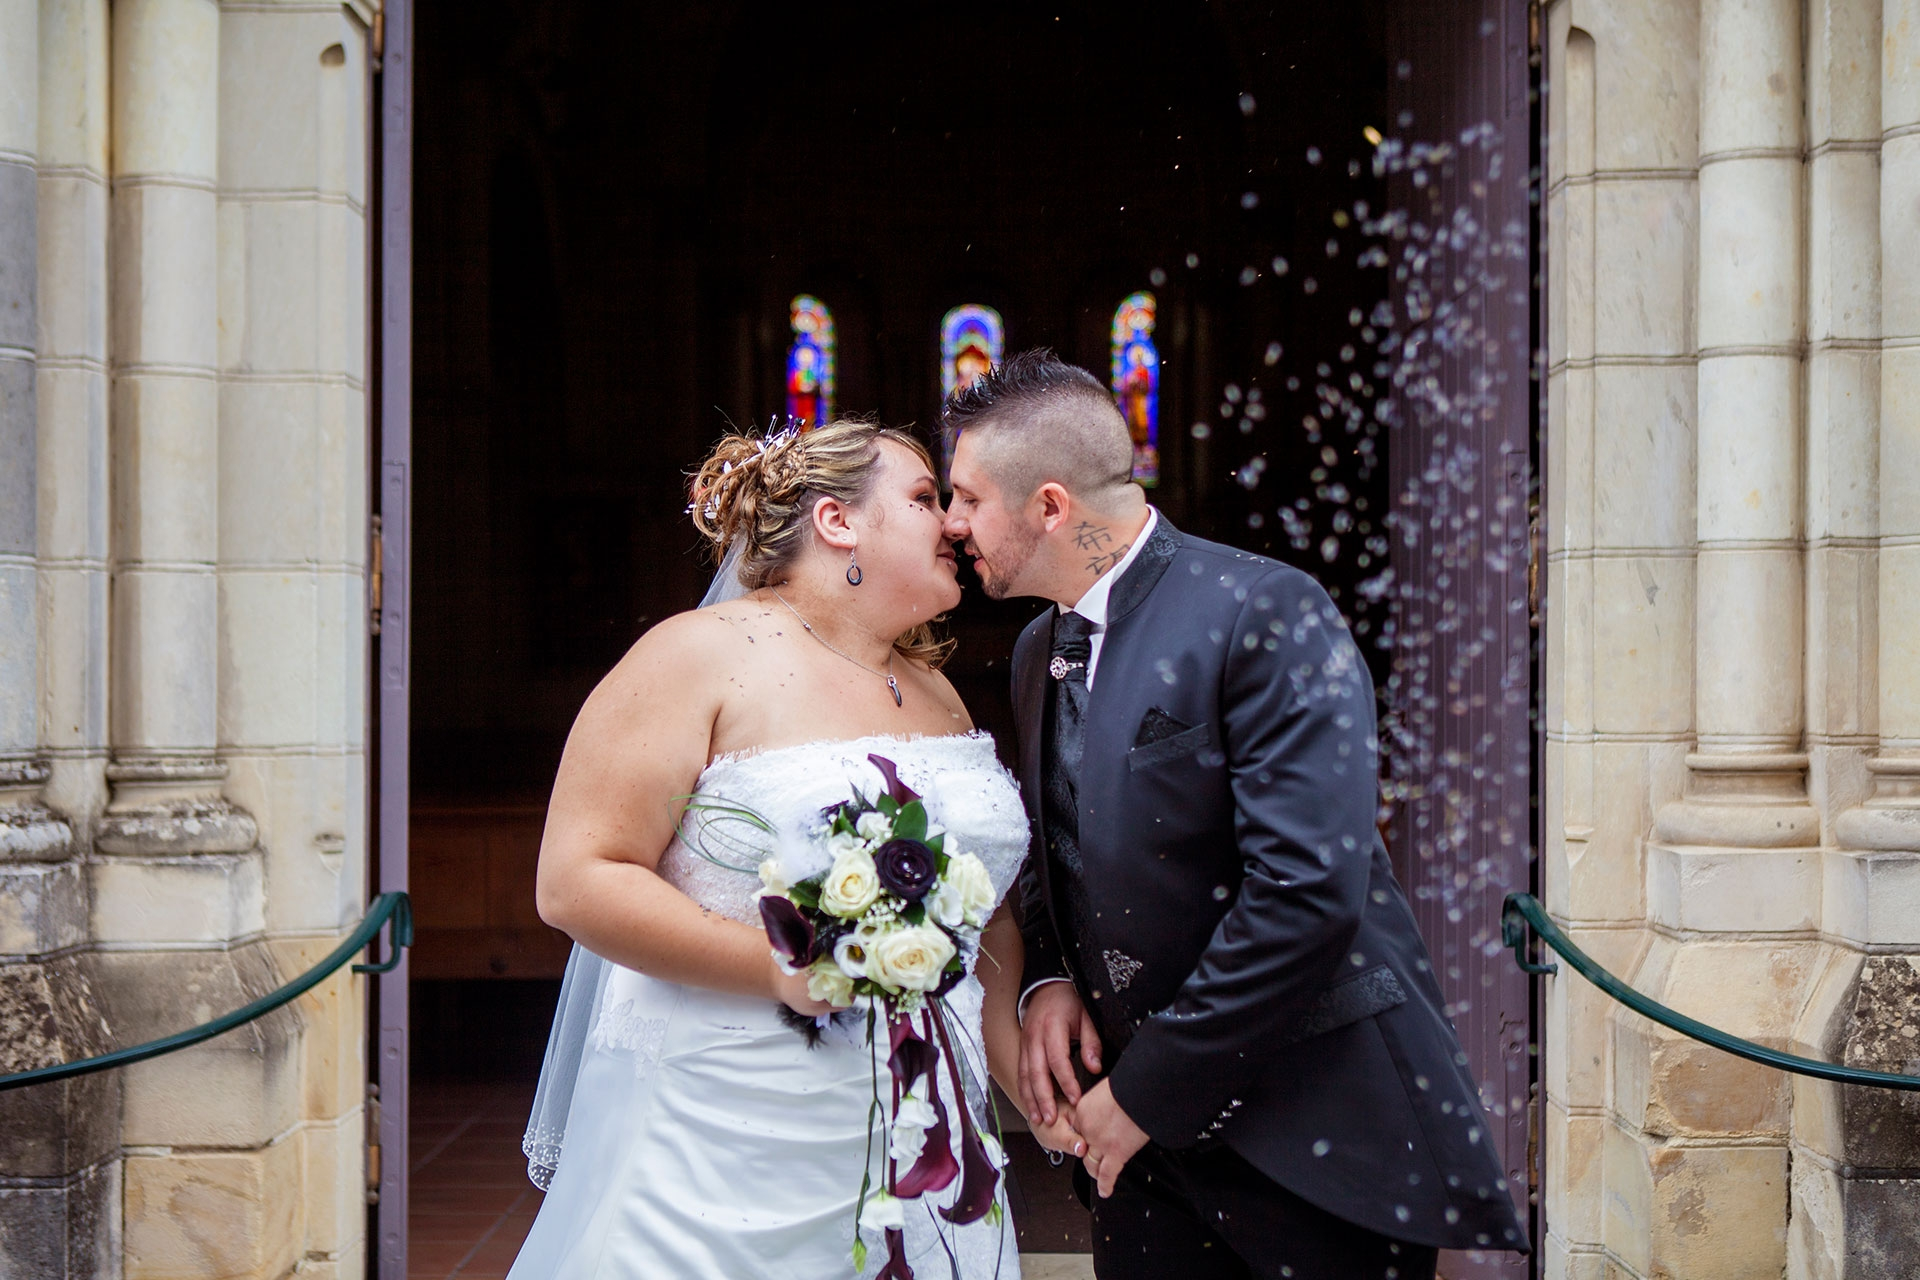 particuliers-evenements-mariages-oui-elodie&wilson-50